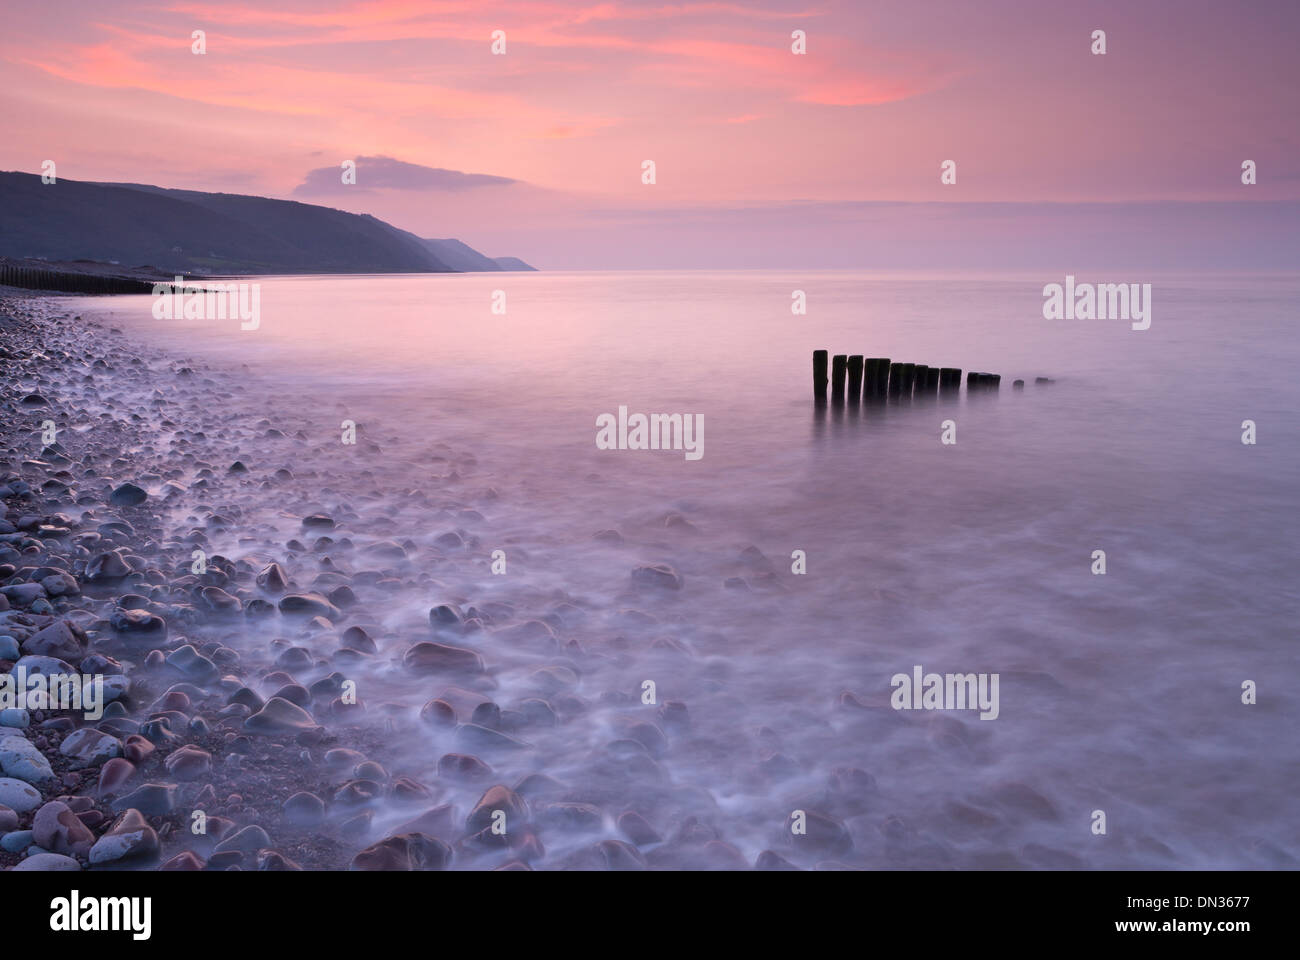 High tide at Bossington Beach at sunset, Exmoor, Somerset, England. - Stock Image